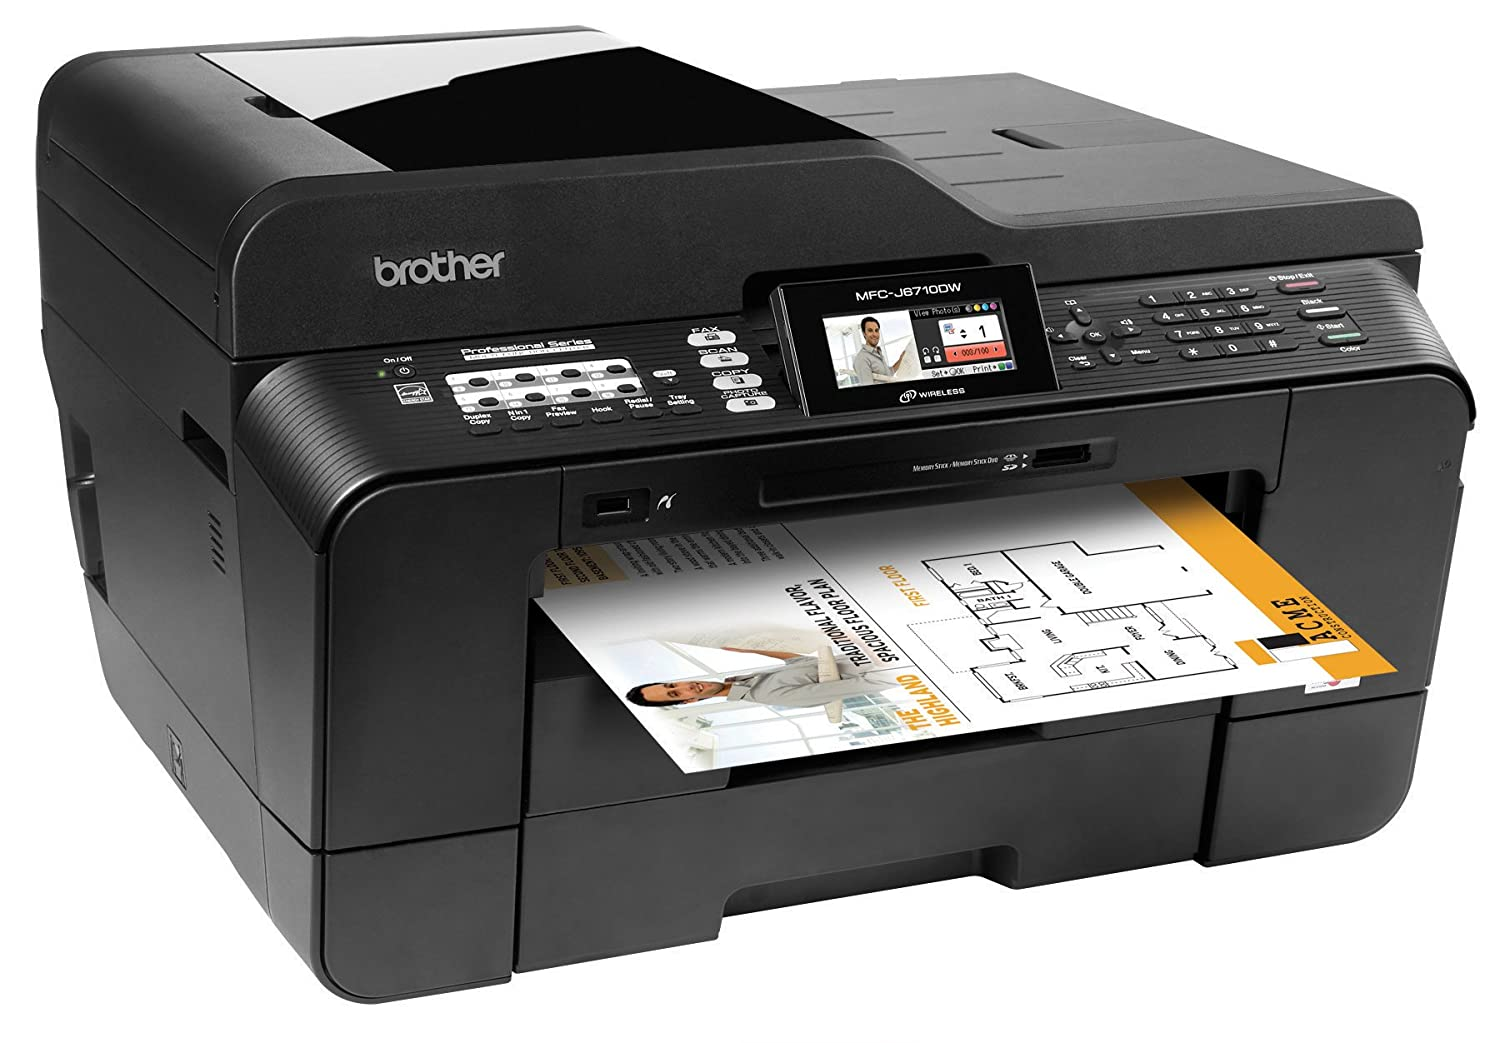 Driver for Brother MFC-J6710DW Printer/Scanner